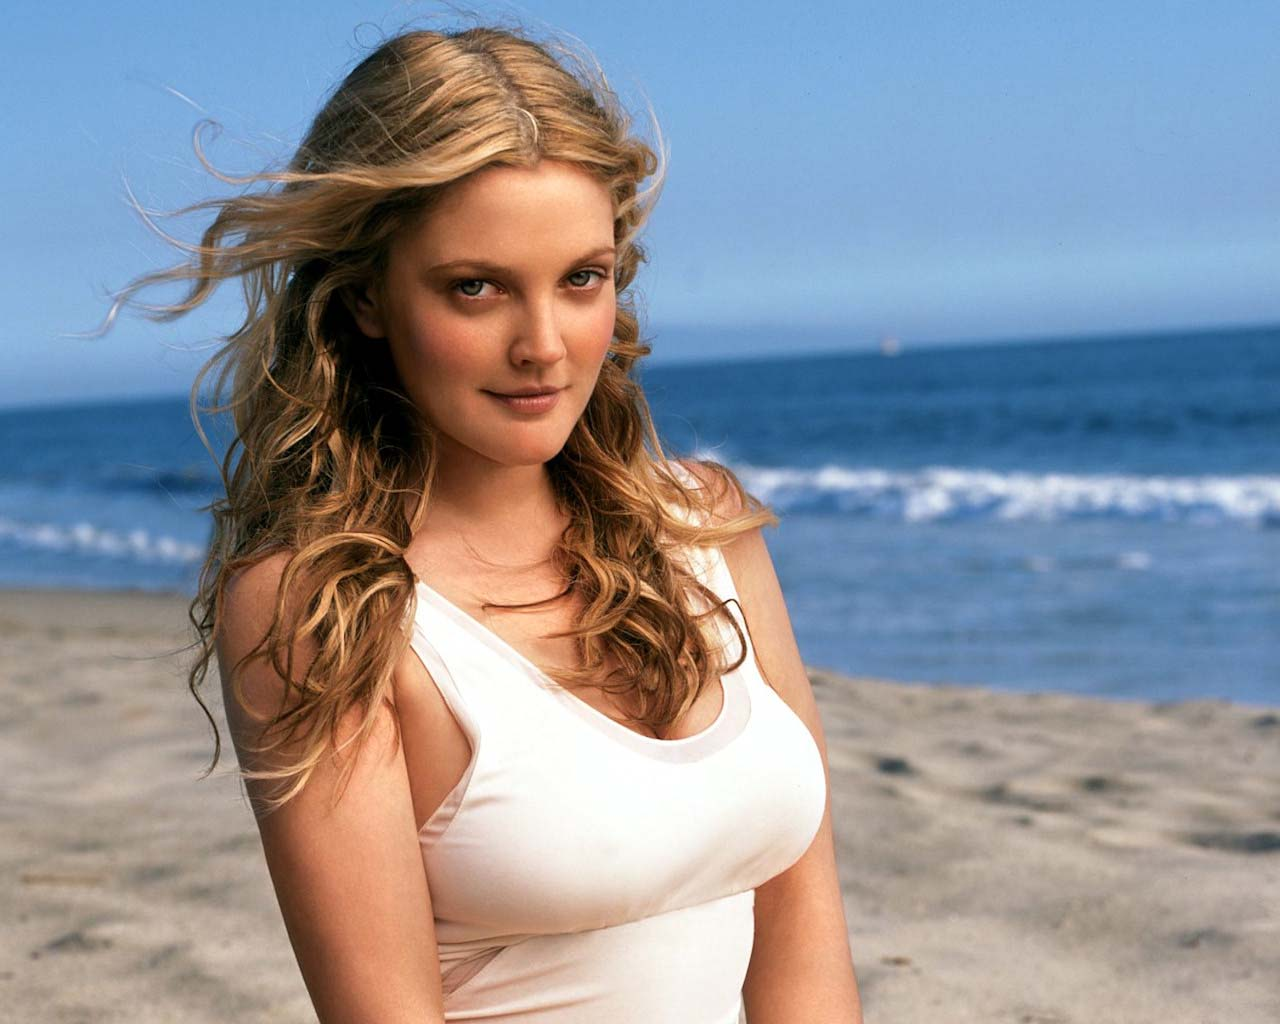 drew barrymore sexy video